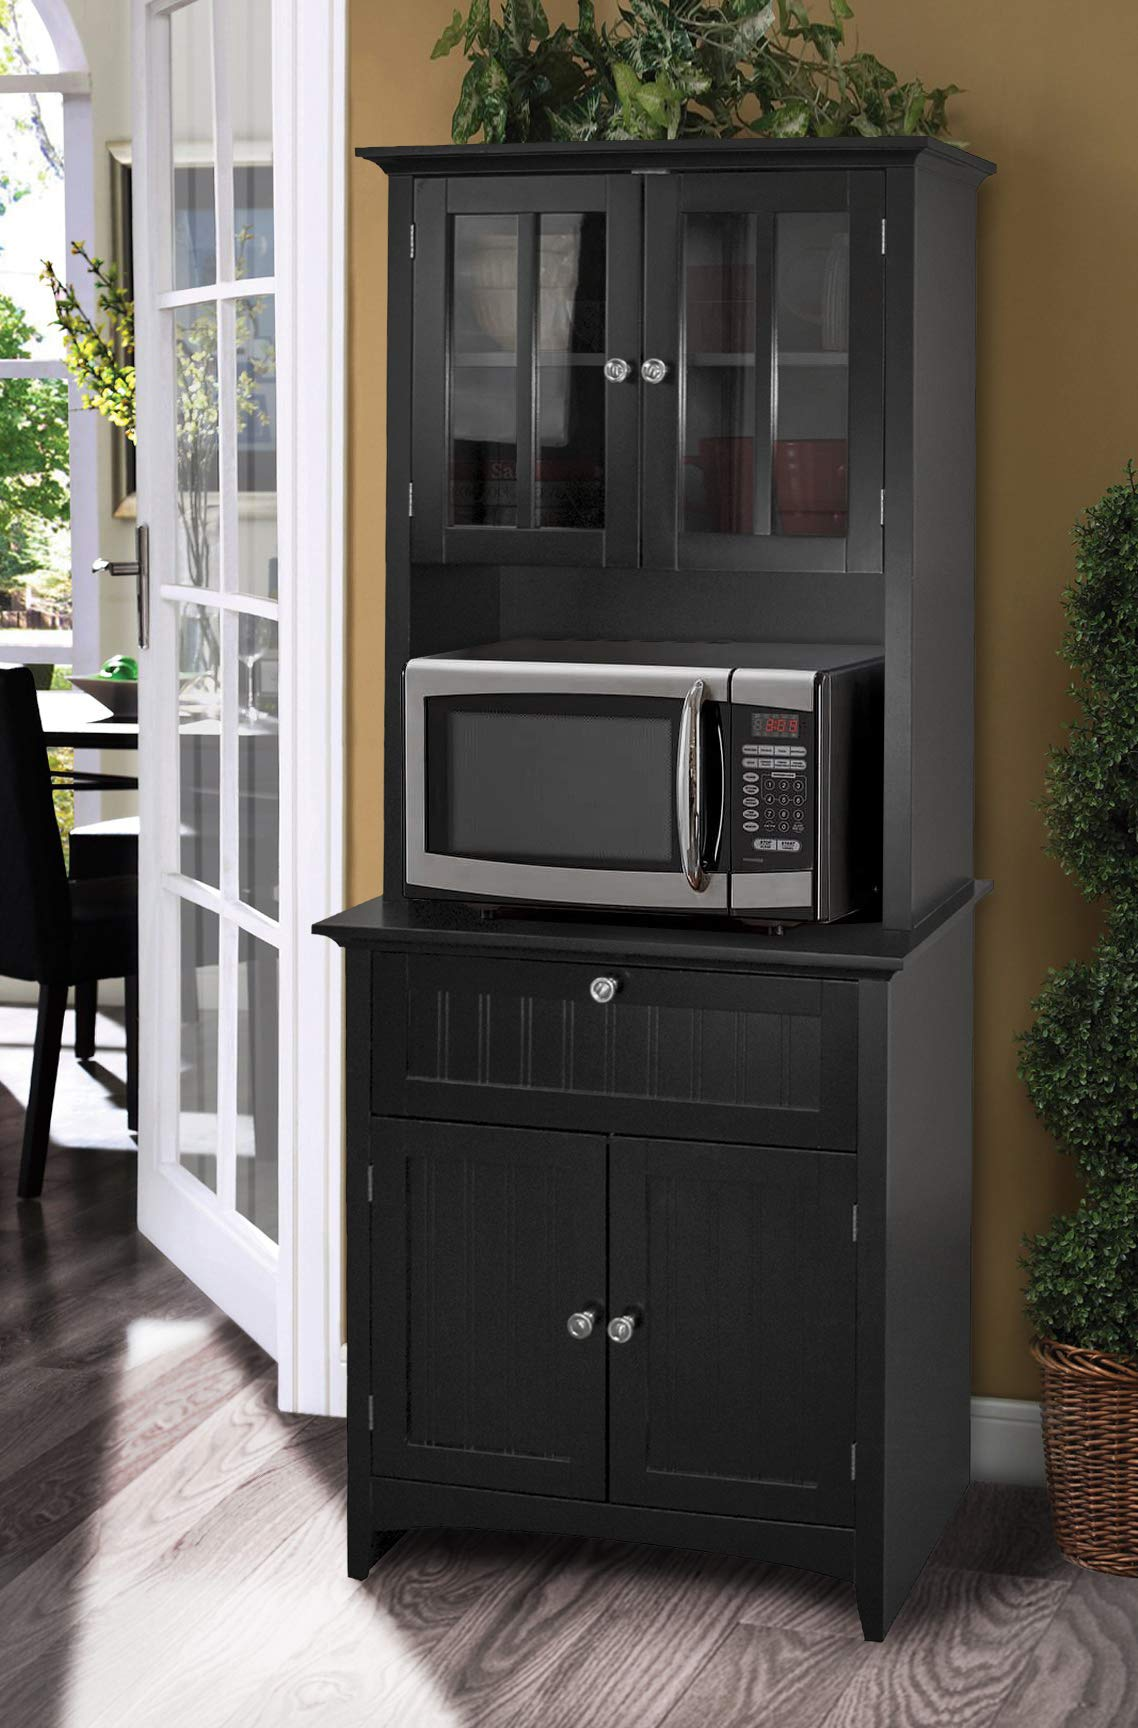 OS Home and Office Framed Glass Doors and Drawer in Black kitchen buffet with hutch by OS Home and Office